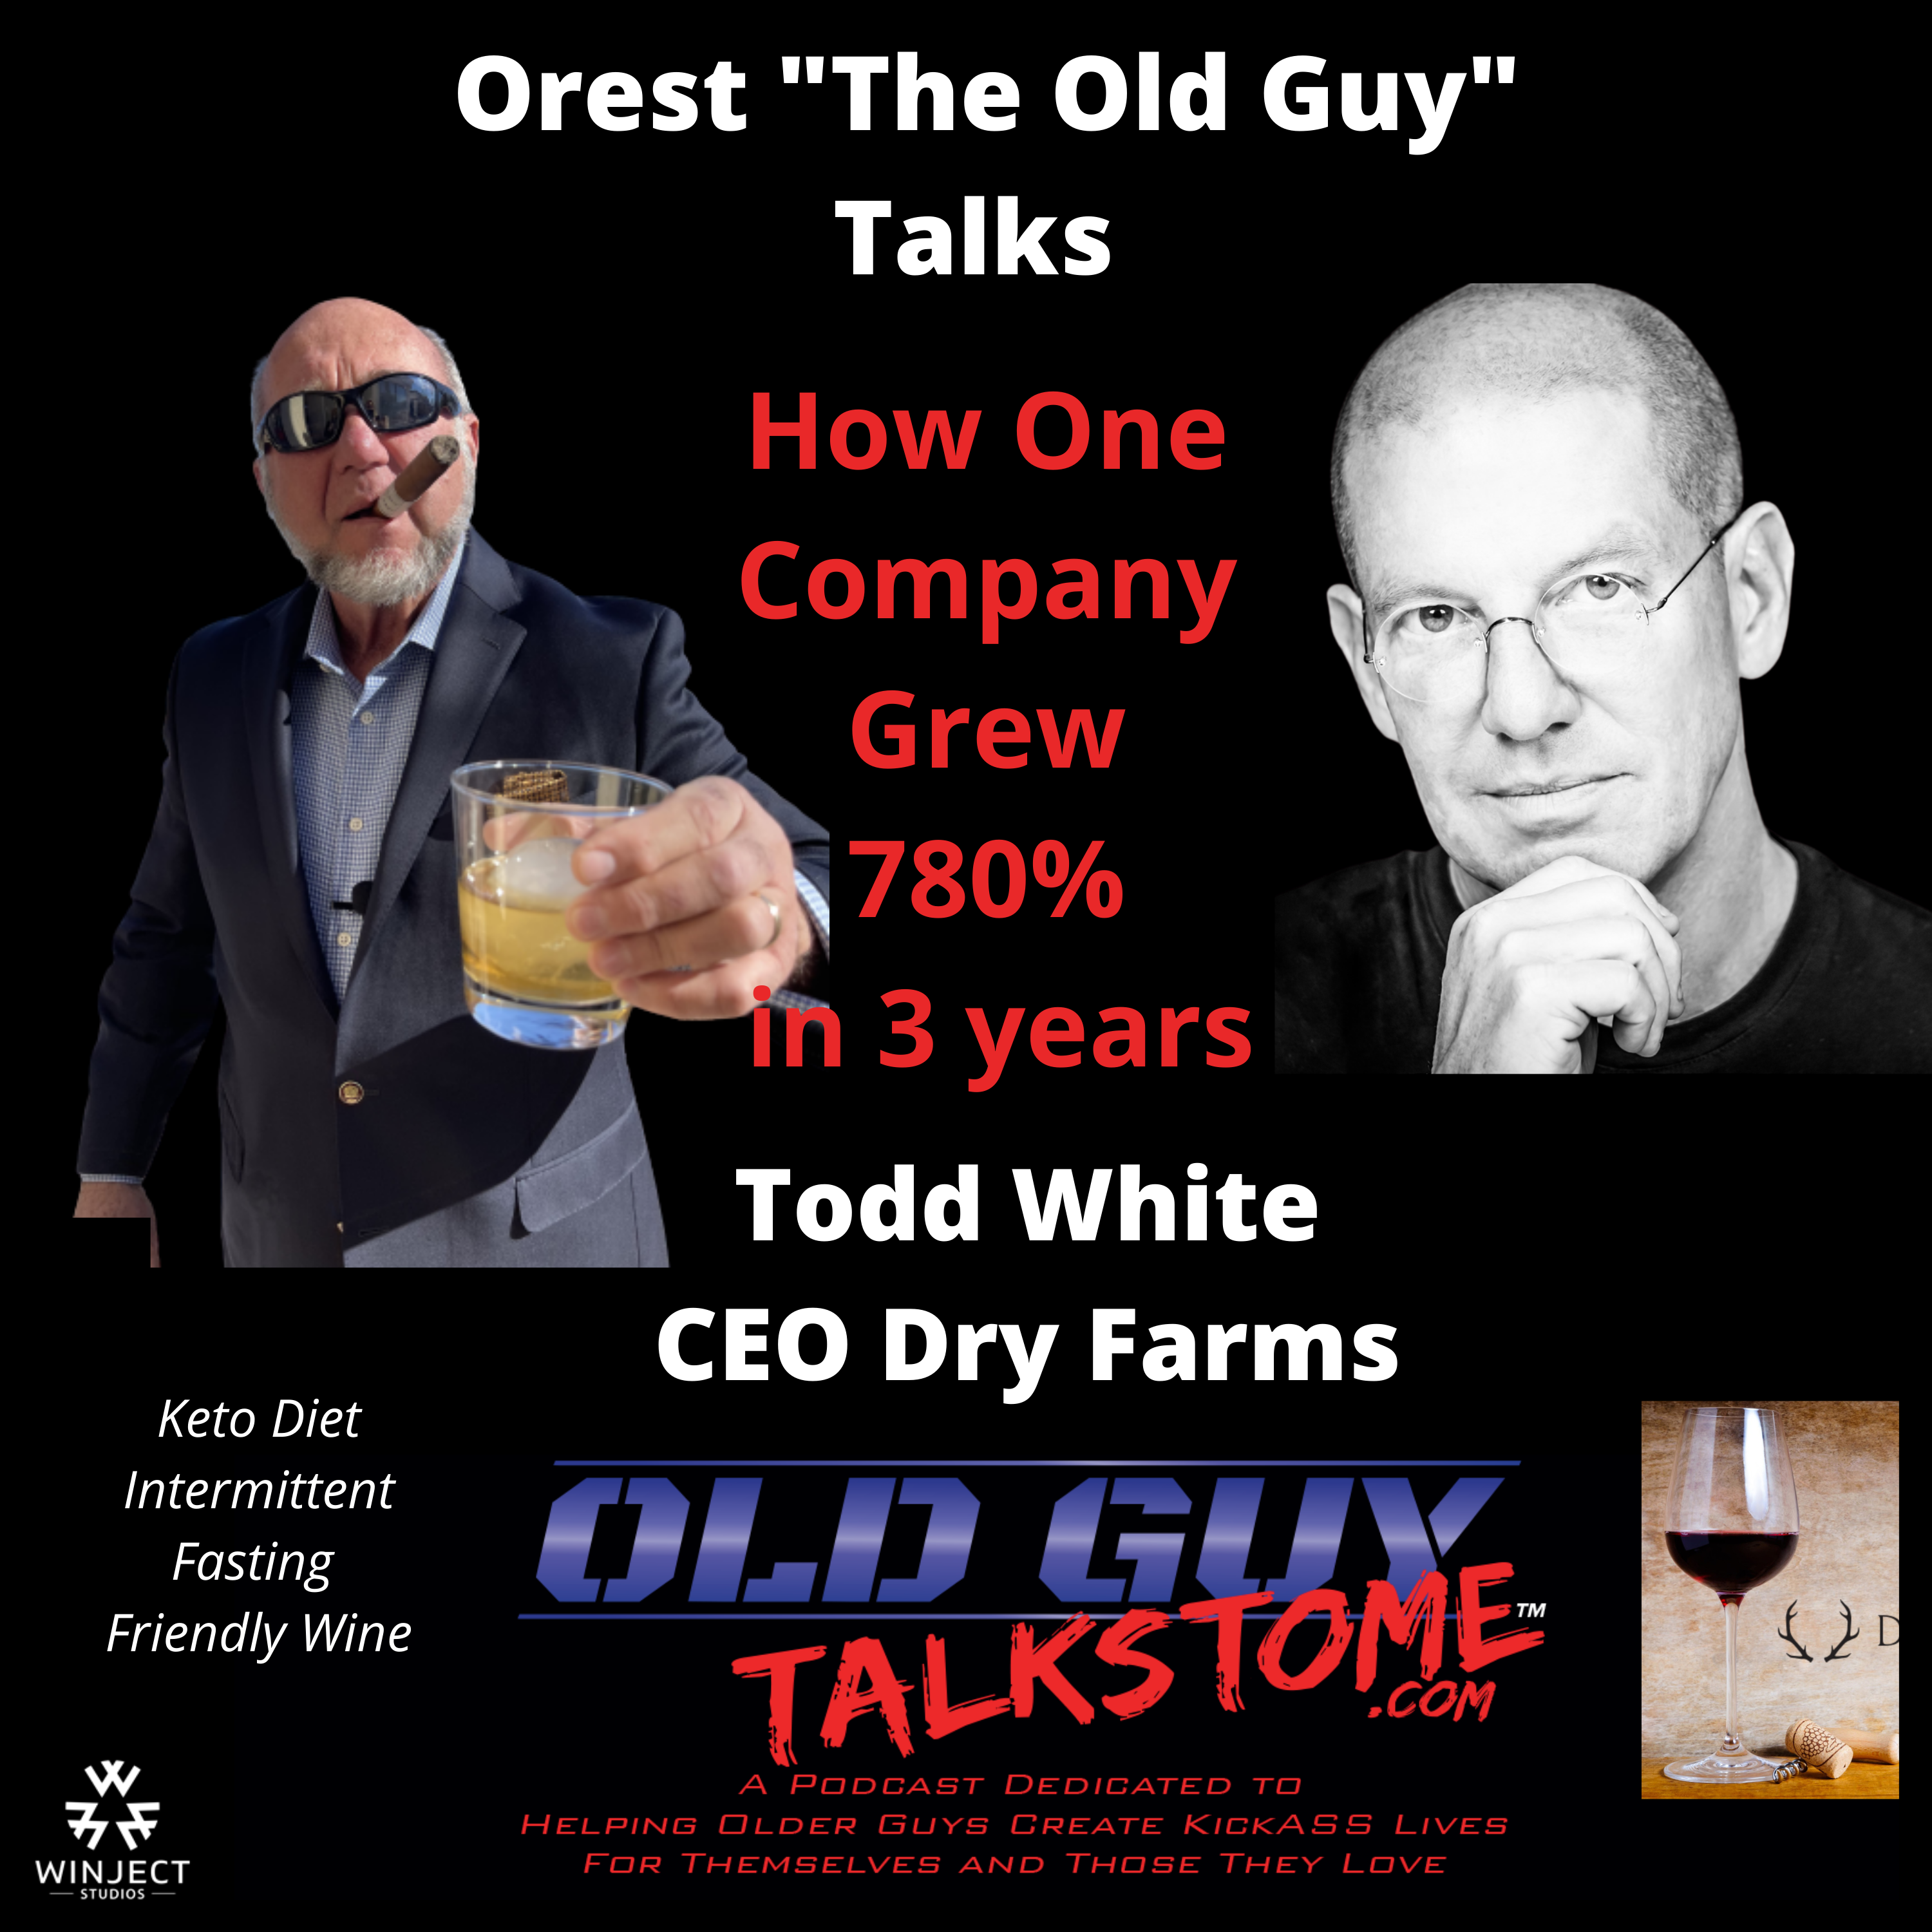 OldGuyTalksToMe - 74. How One Company Grew 760% in 3 Years